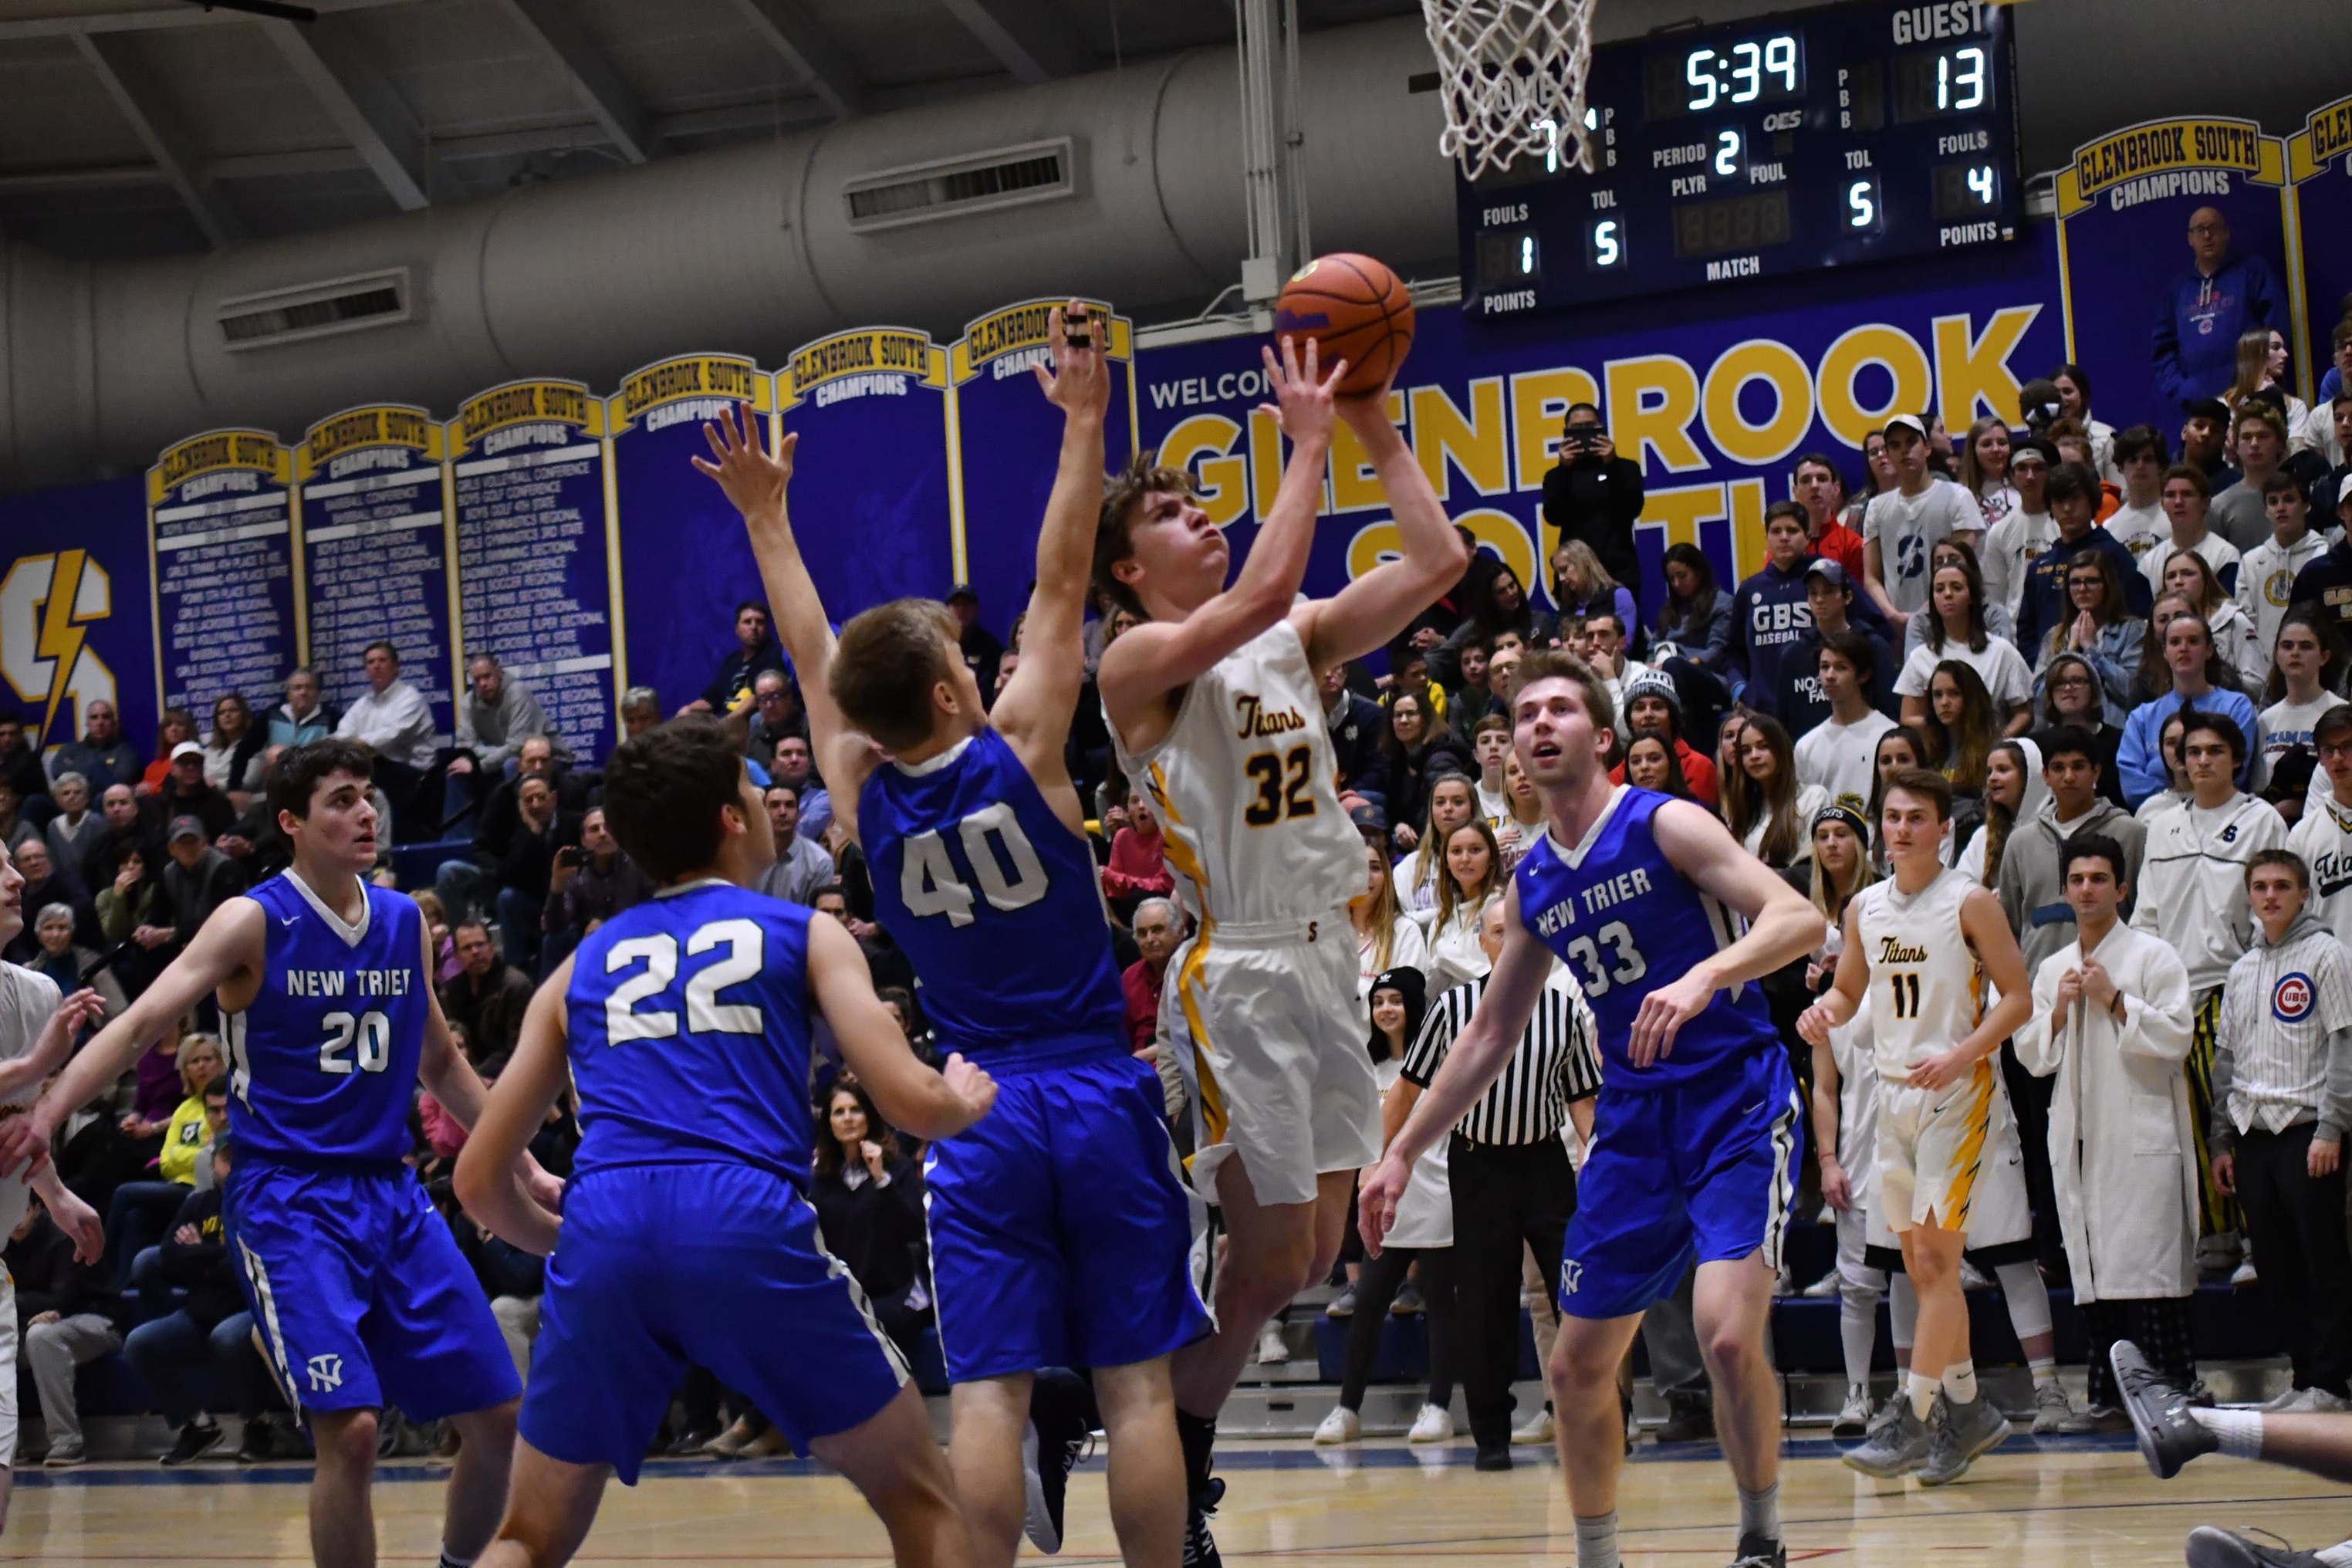 Glenbrook South's Dom Martinelli (32) makes a basket against New Trier.